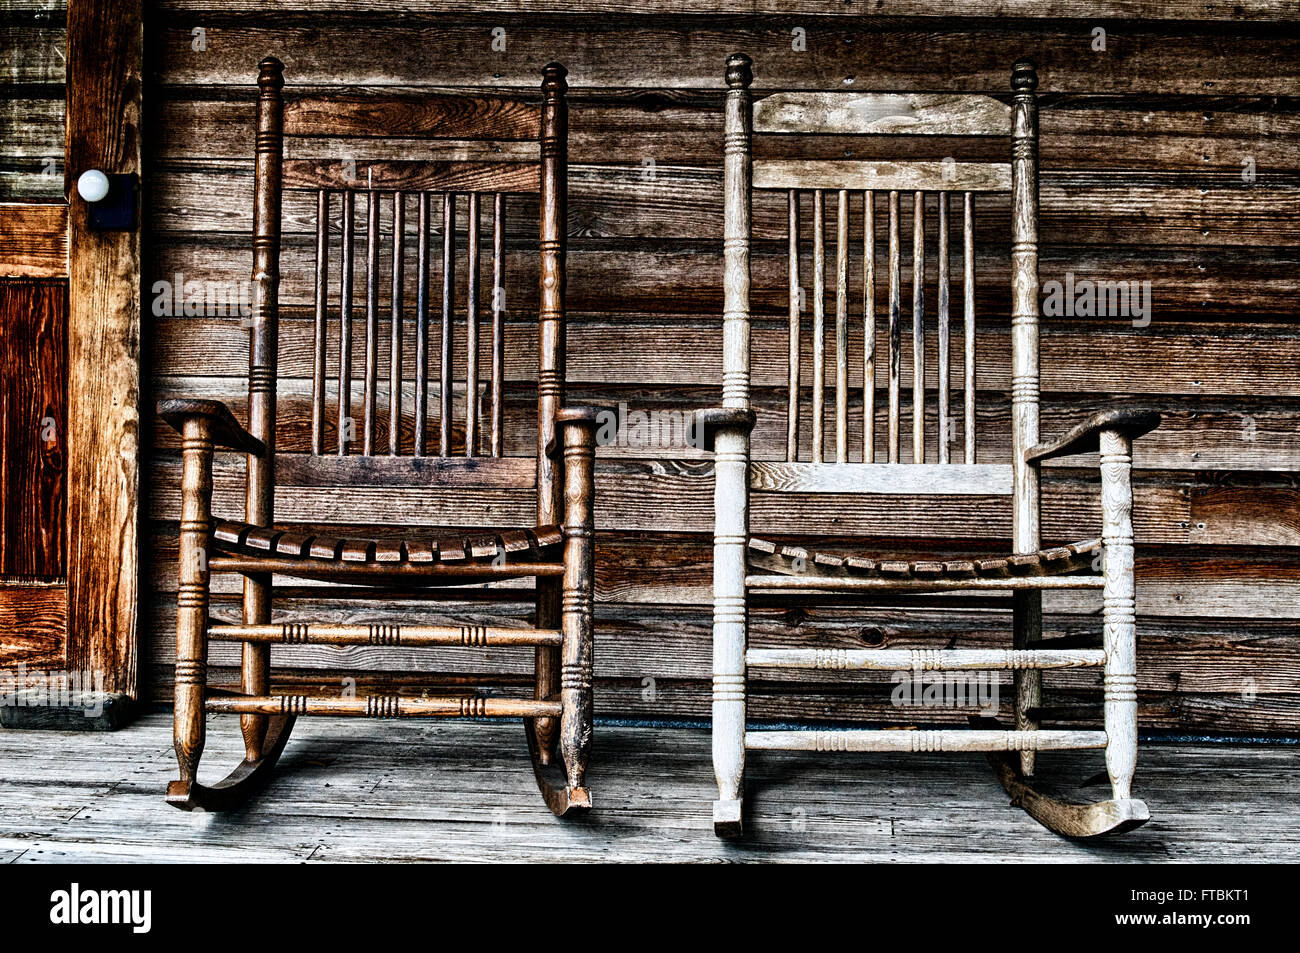 Two Old Wooden Rocking Chairs On Front Porch Part Of Door And The Houses Shingles Can Be Seen Rustic Koreshan State Park Estero Florida